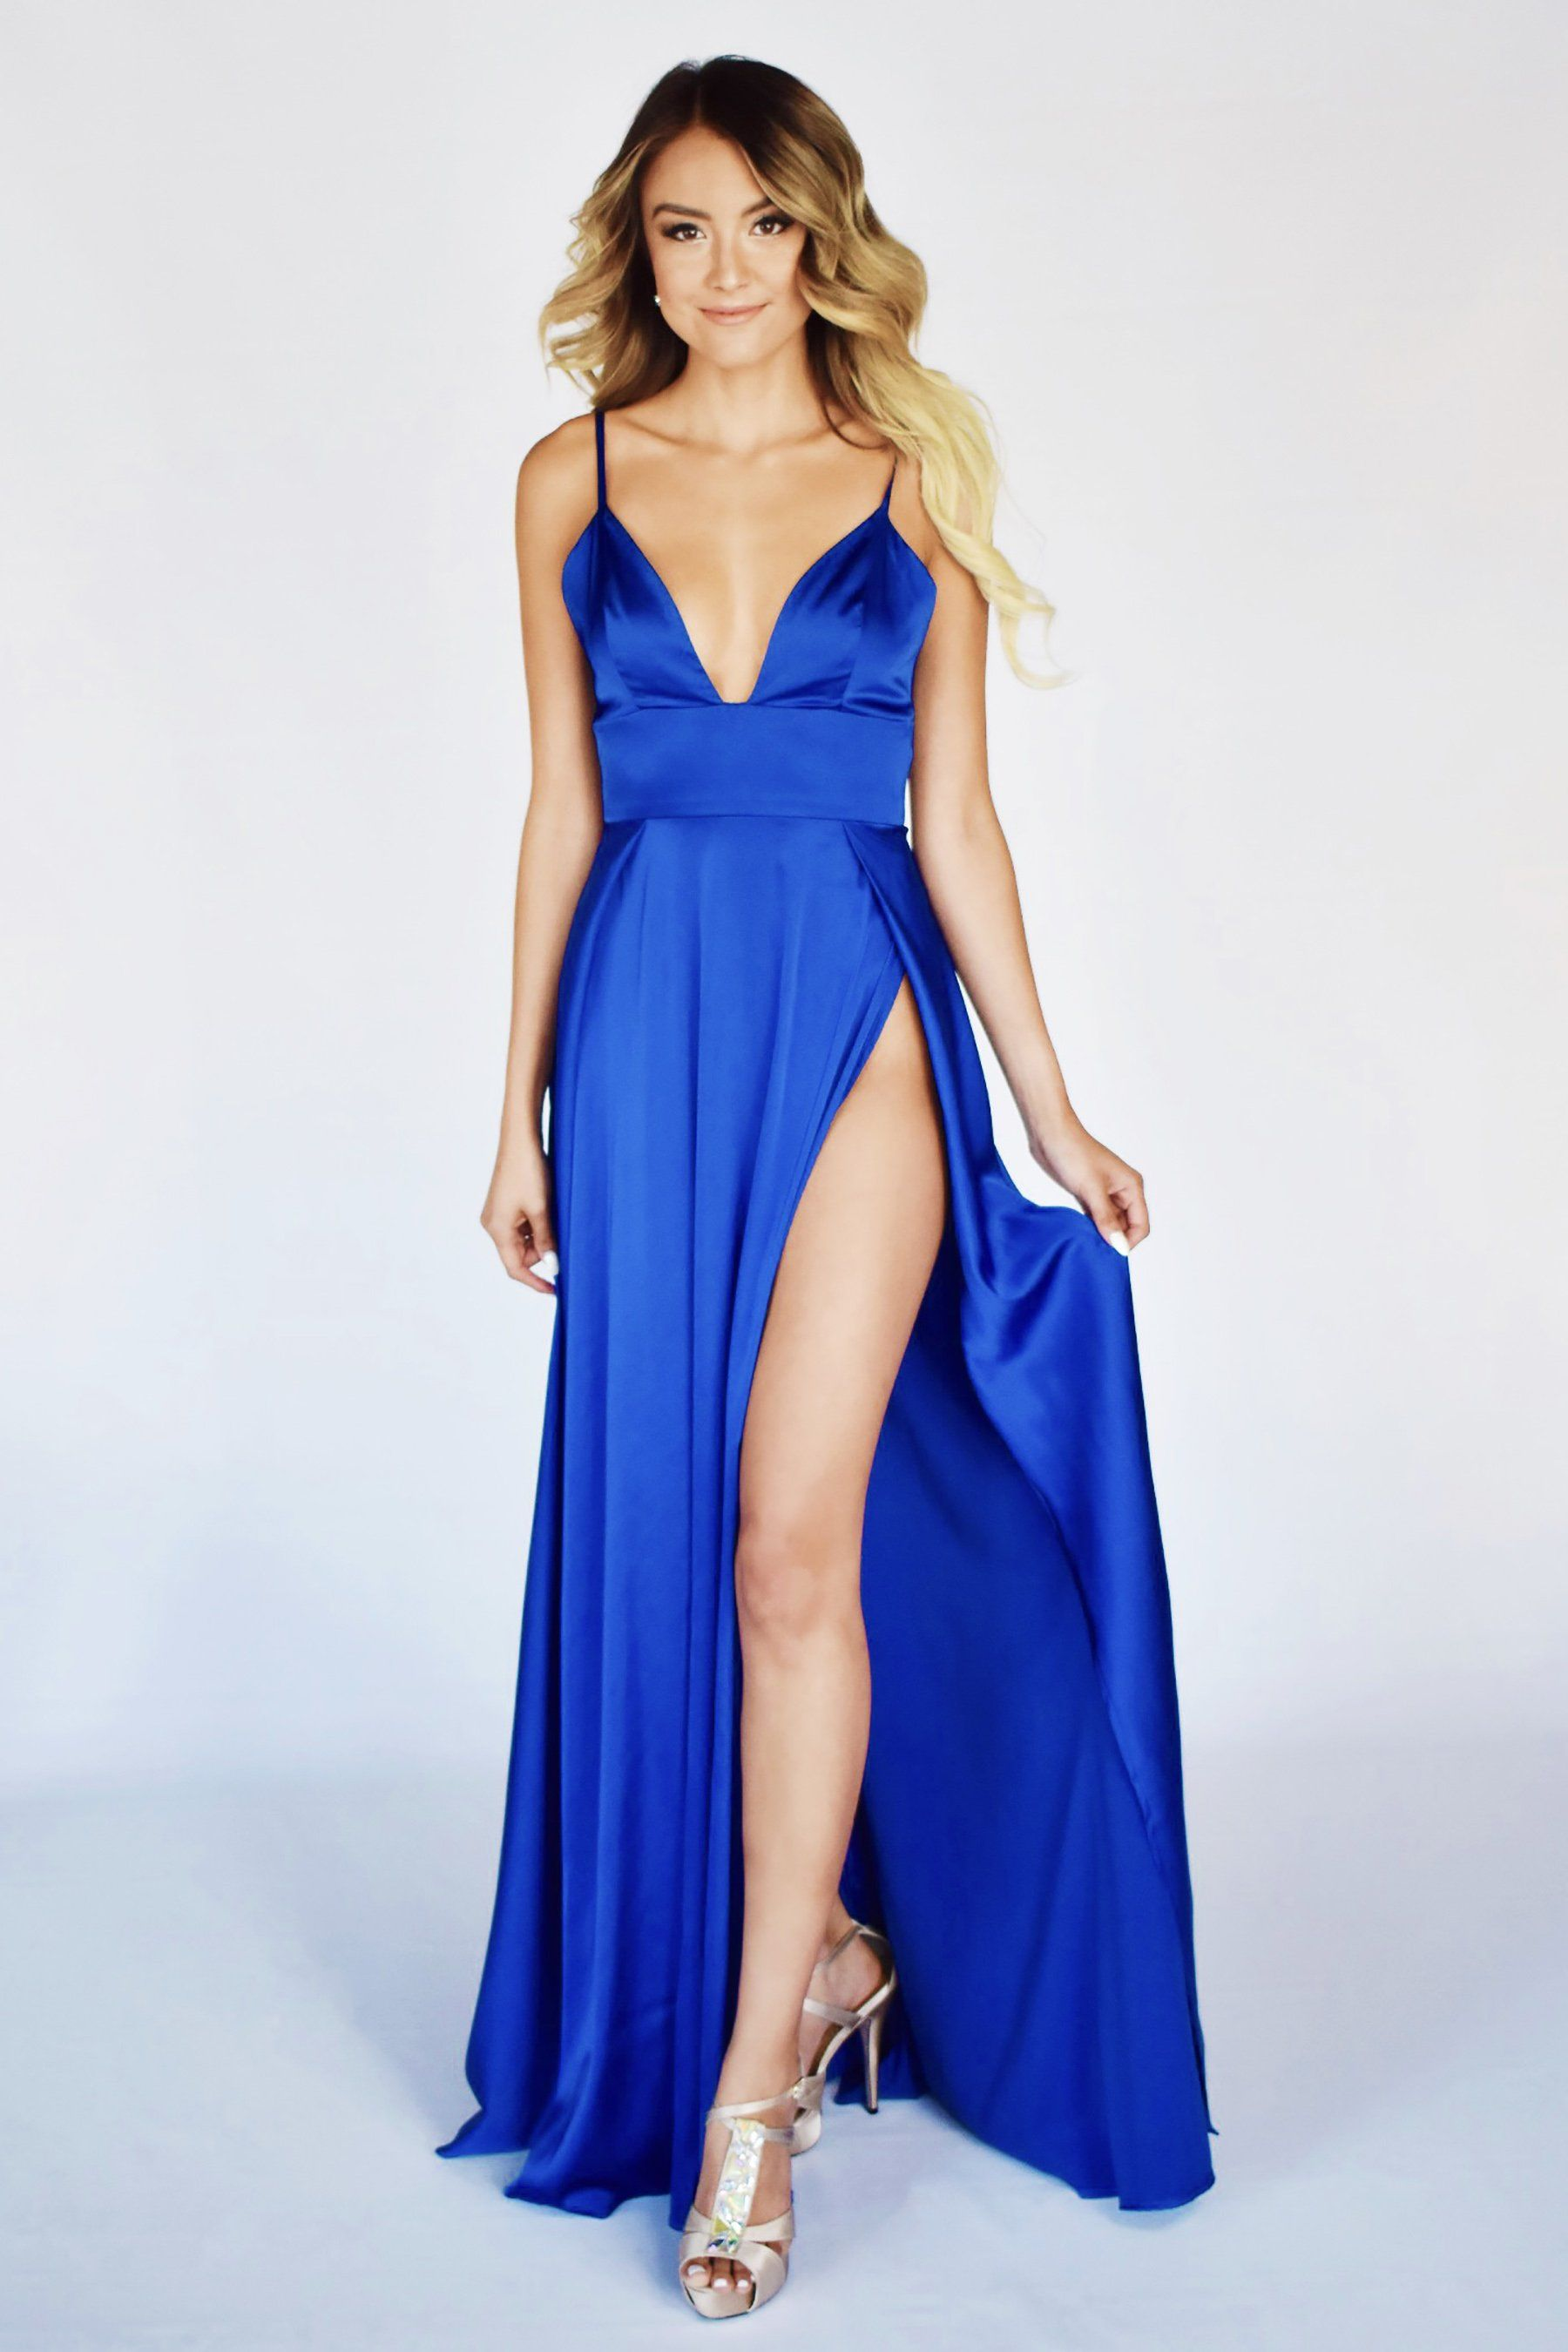 Ibiza gown all things bridesmaid pinterest double slit dress